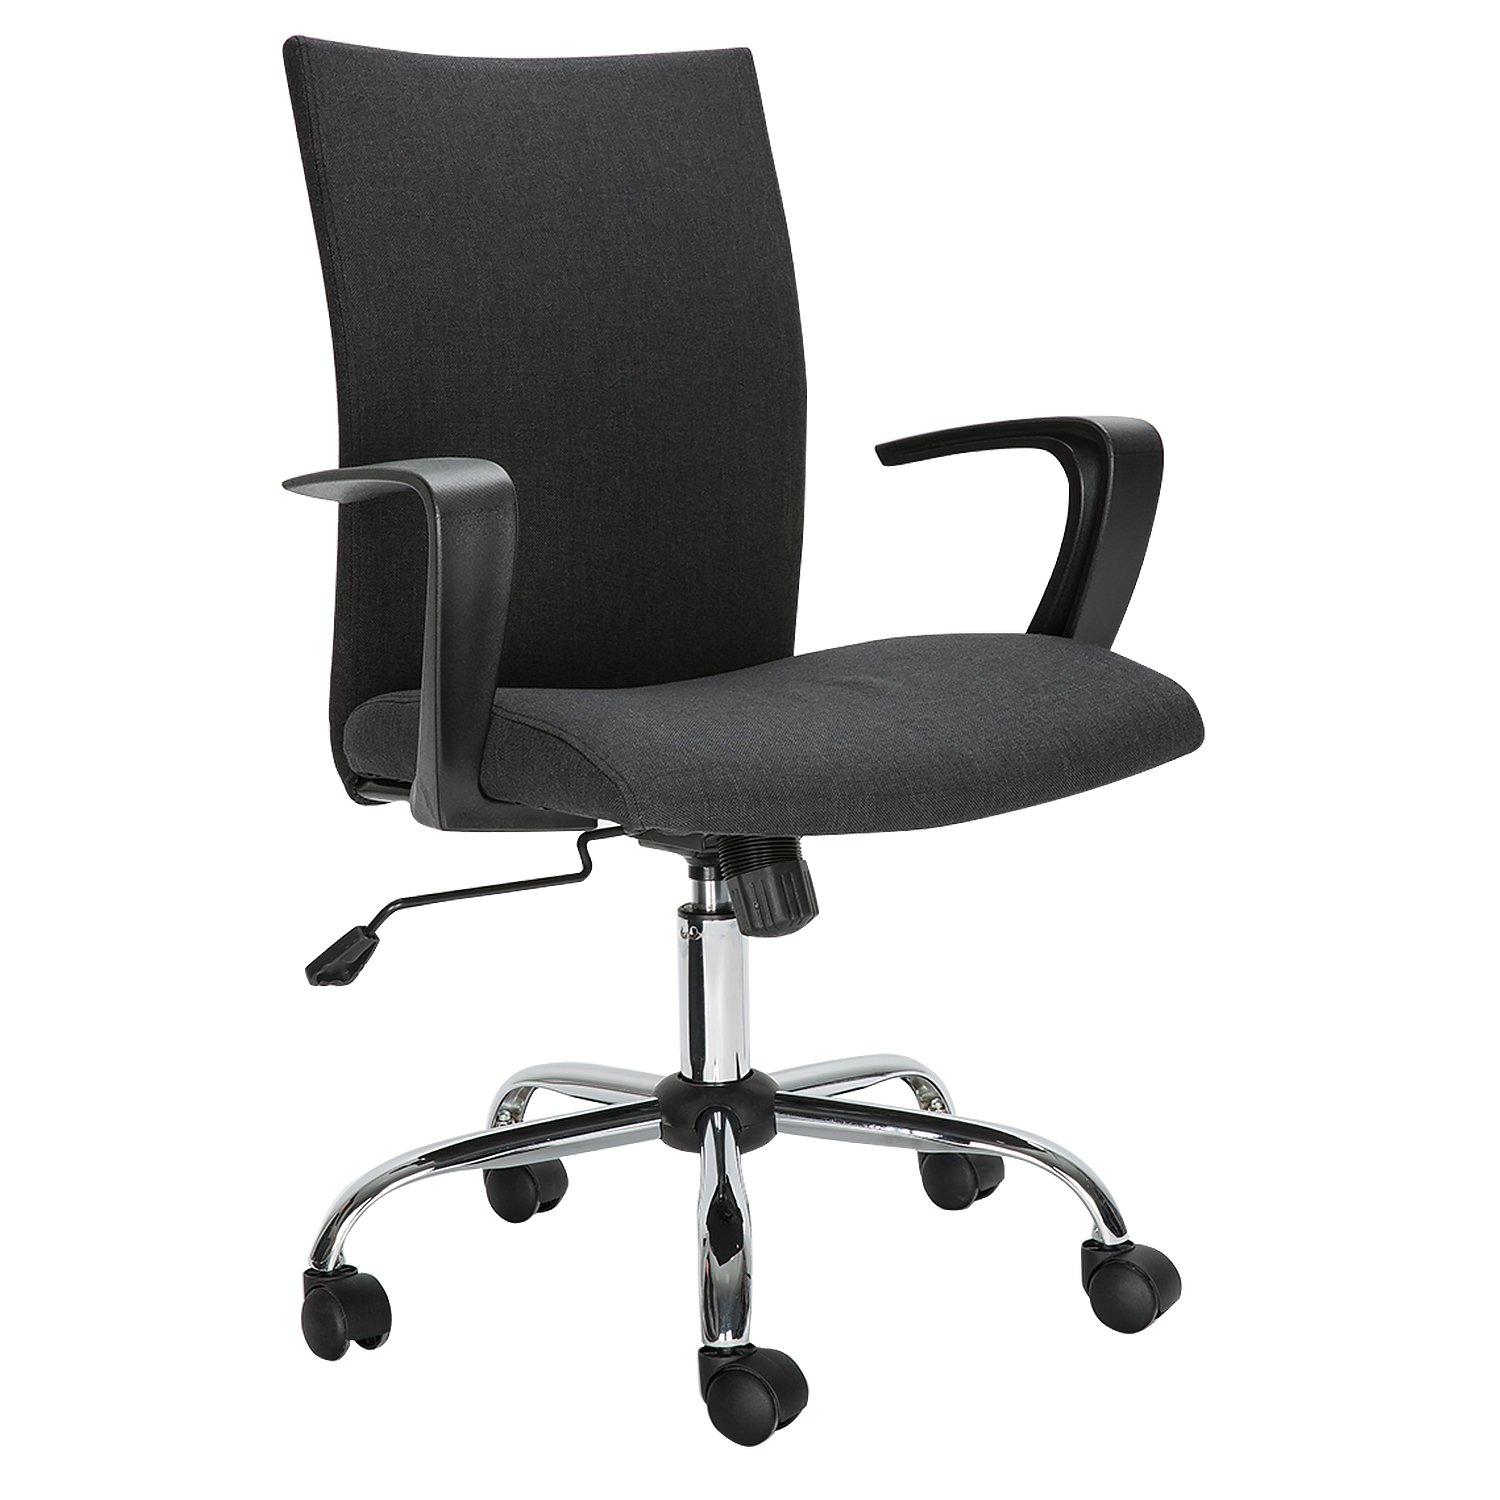 HollyHOME Computer Desk Chair, Comfort Fabric Swivel Home Office Task Chair with Arms and Adjustable Height, Suitable For Computer Working and Meeting